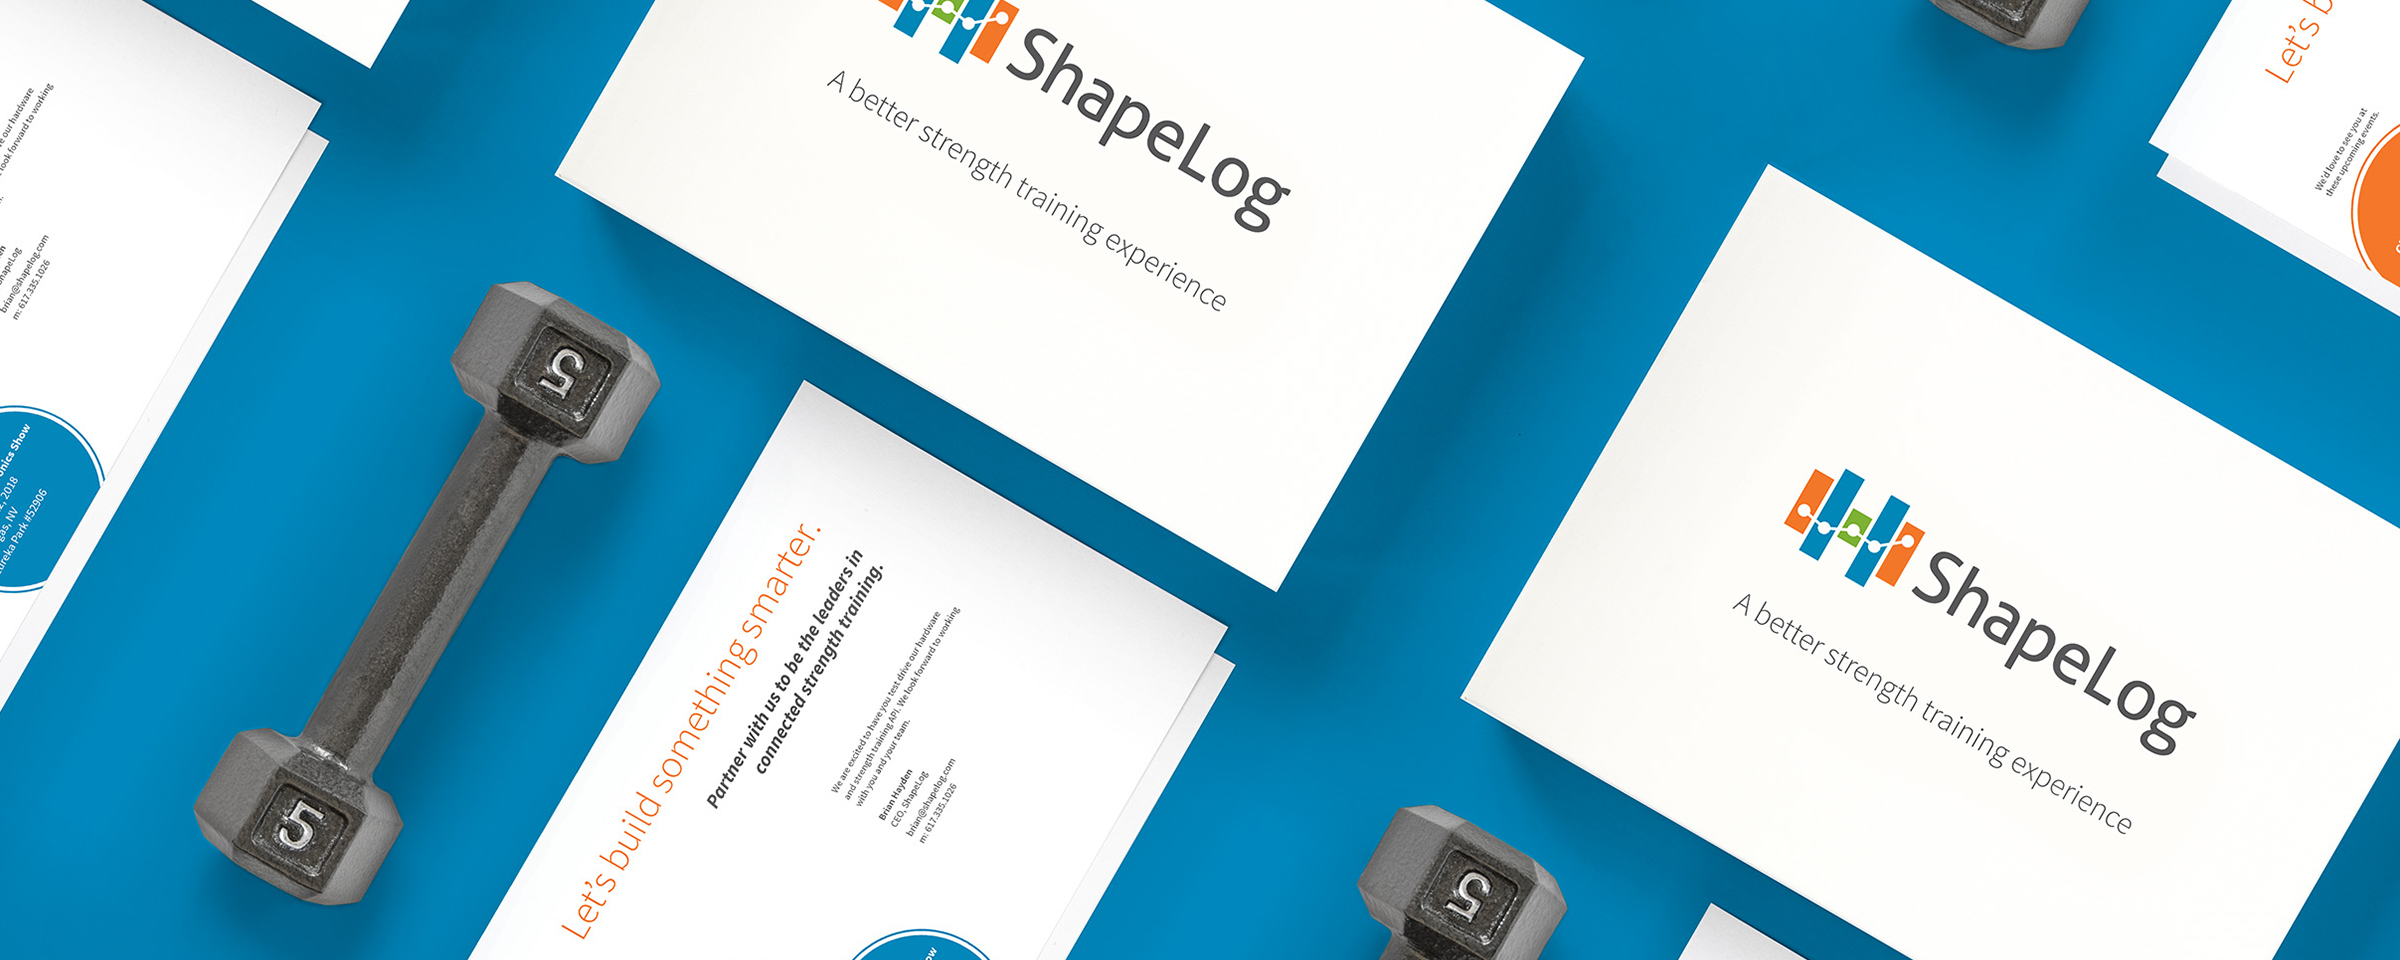 ShapeLog high-value mailer featured image by Blue Flame Thinking